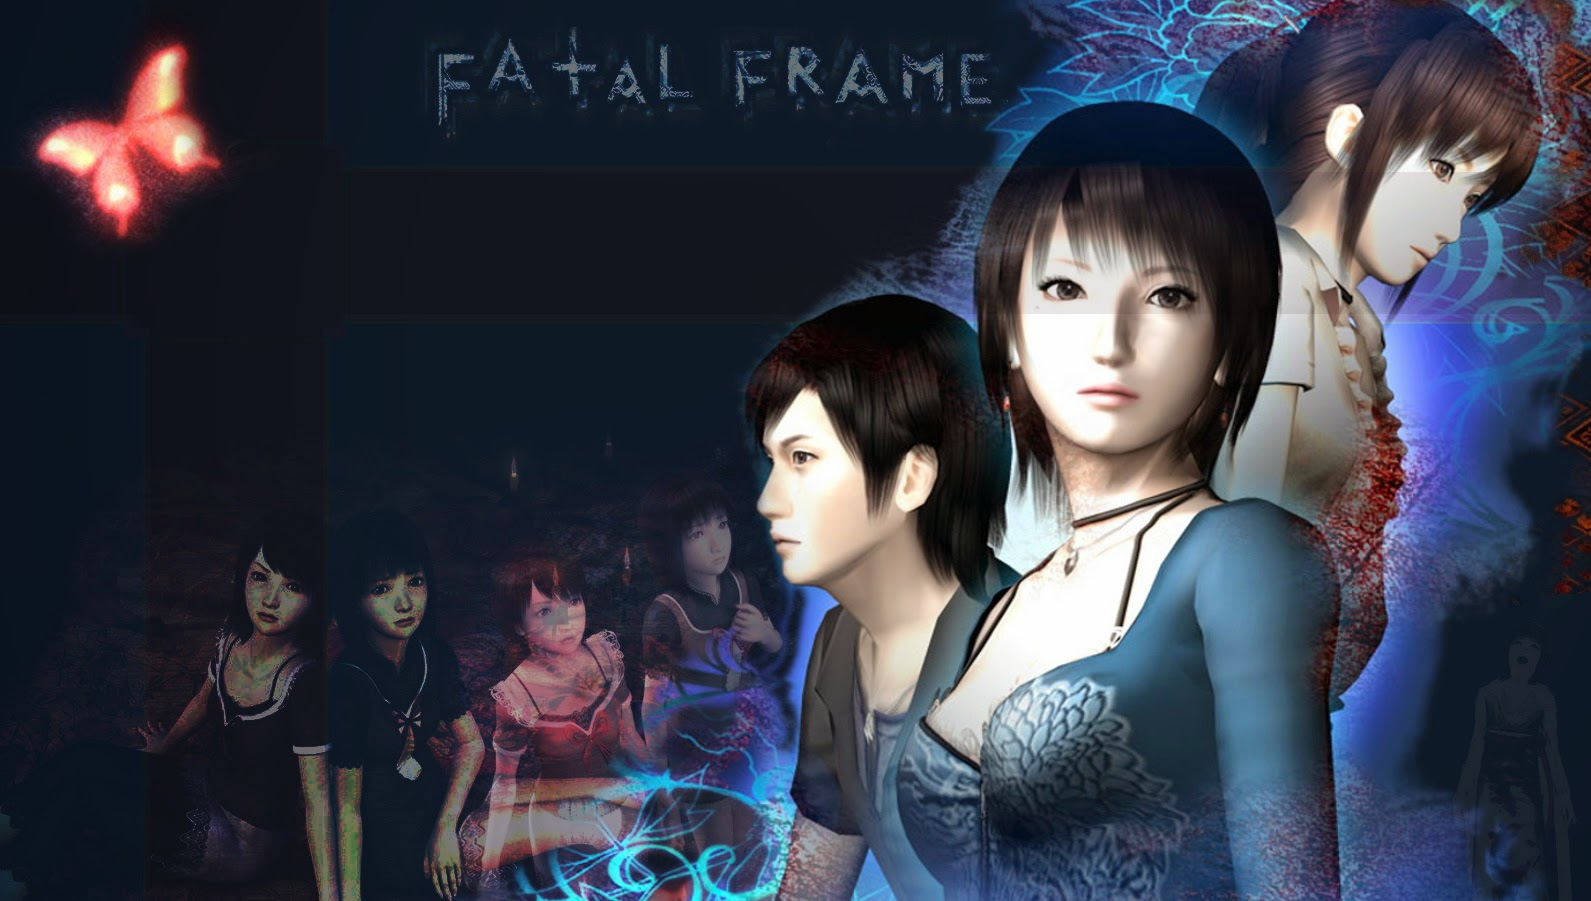 1506 GAMING: Classic Horror Game Fatal Frame Gets Live-Action Movie ...